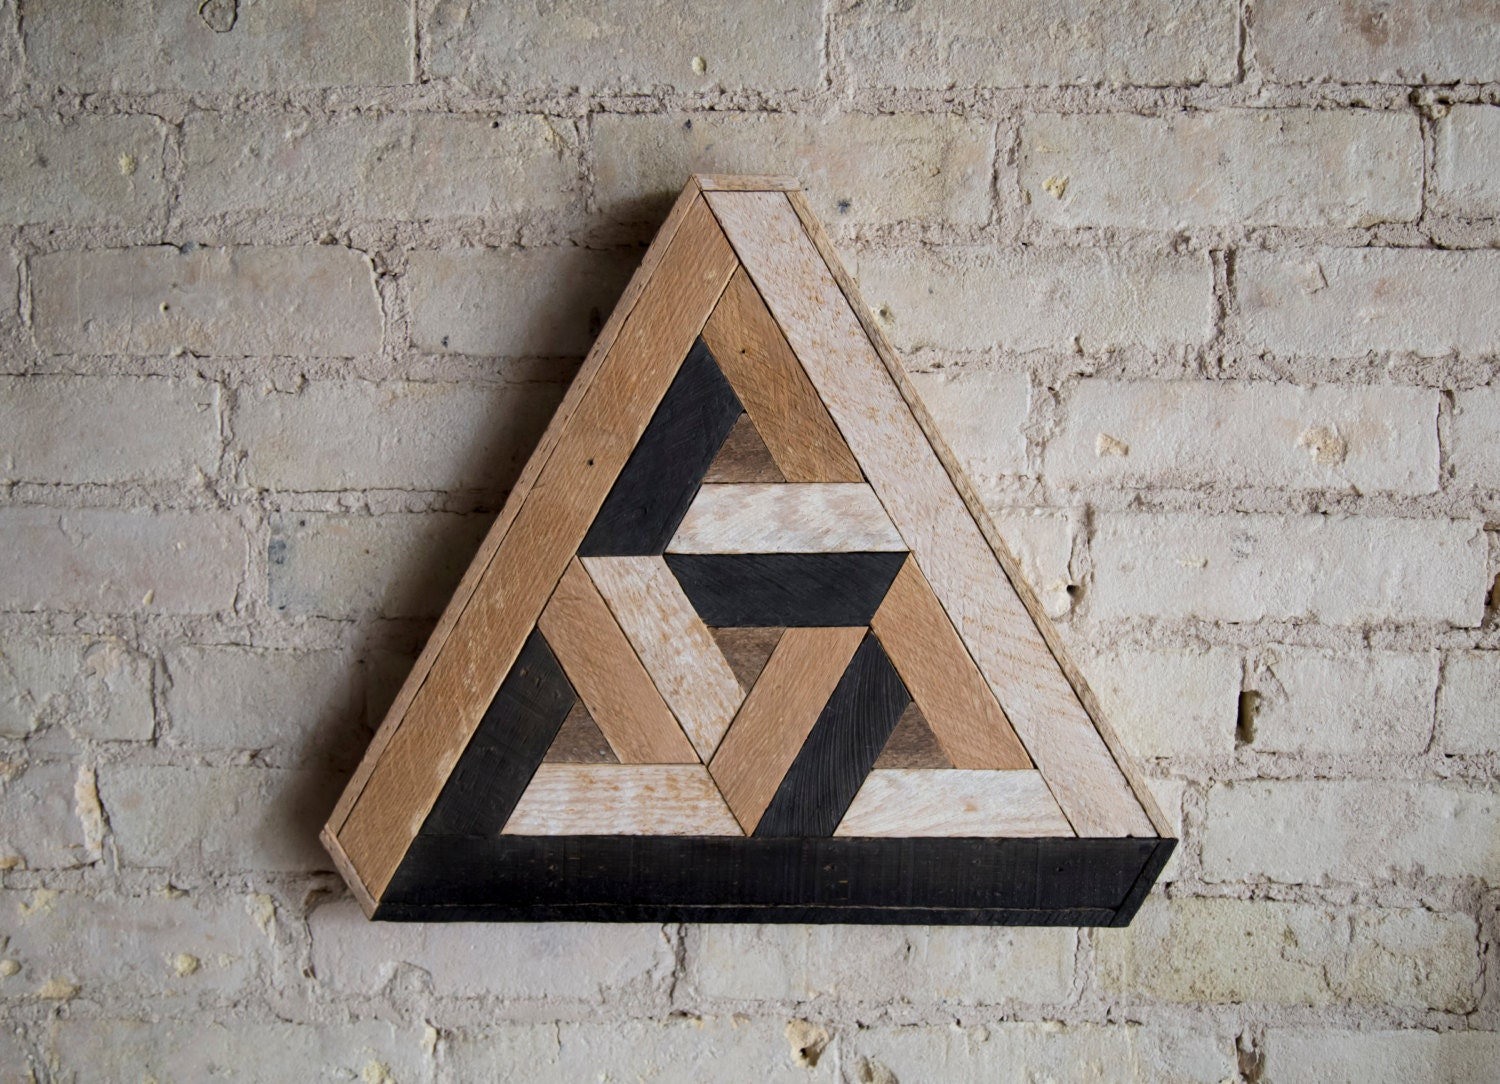 Reclaimed Wood Wall Art Wood Decor Reclaimed Wood Wood Art Rustic Geometric Wood Decor